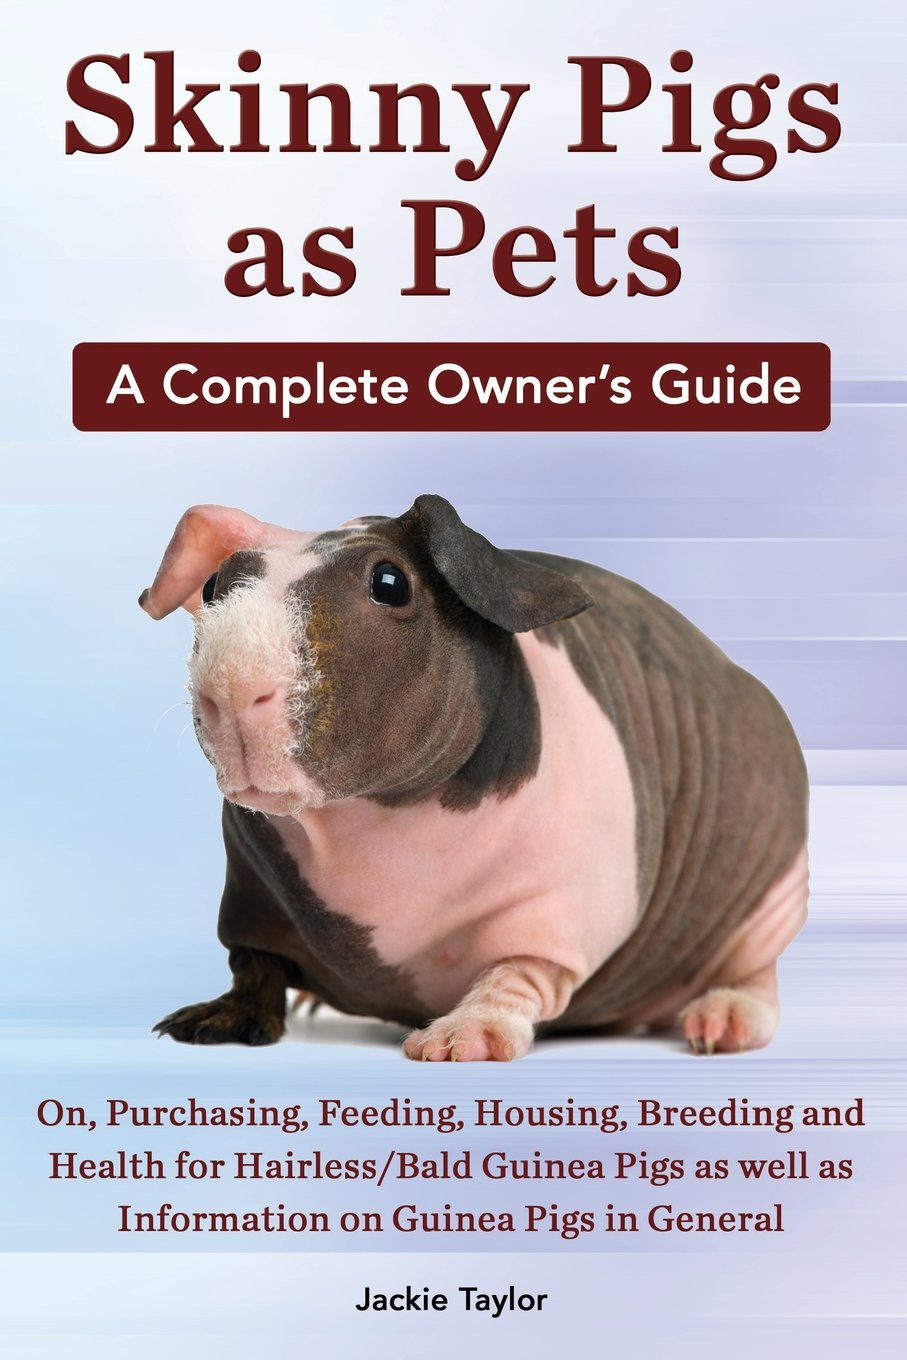 Skinny Pigs as Pets. a Complete Owner's Guide On, Purchasing, Feeding, Housing, Breeding and Health for Hairless/Bald Guinea Pigs as Well as Informati